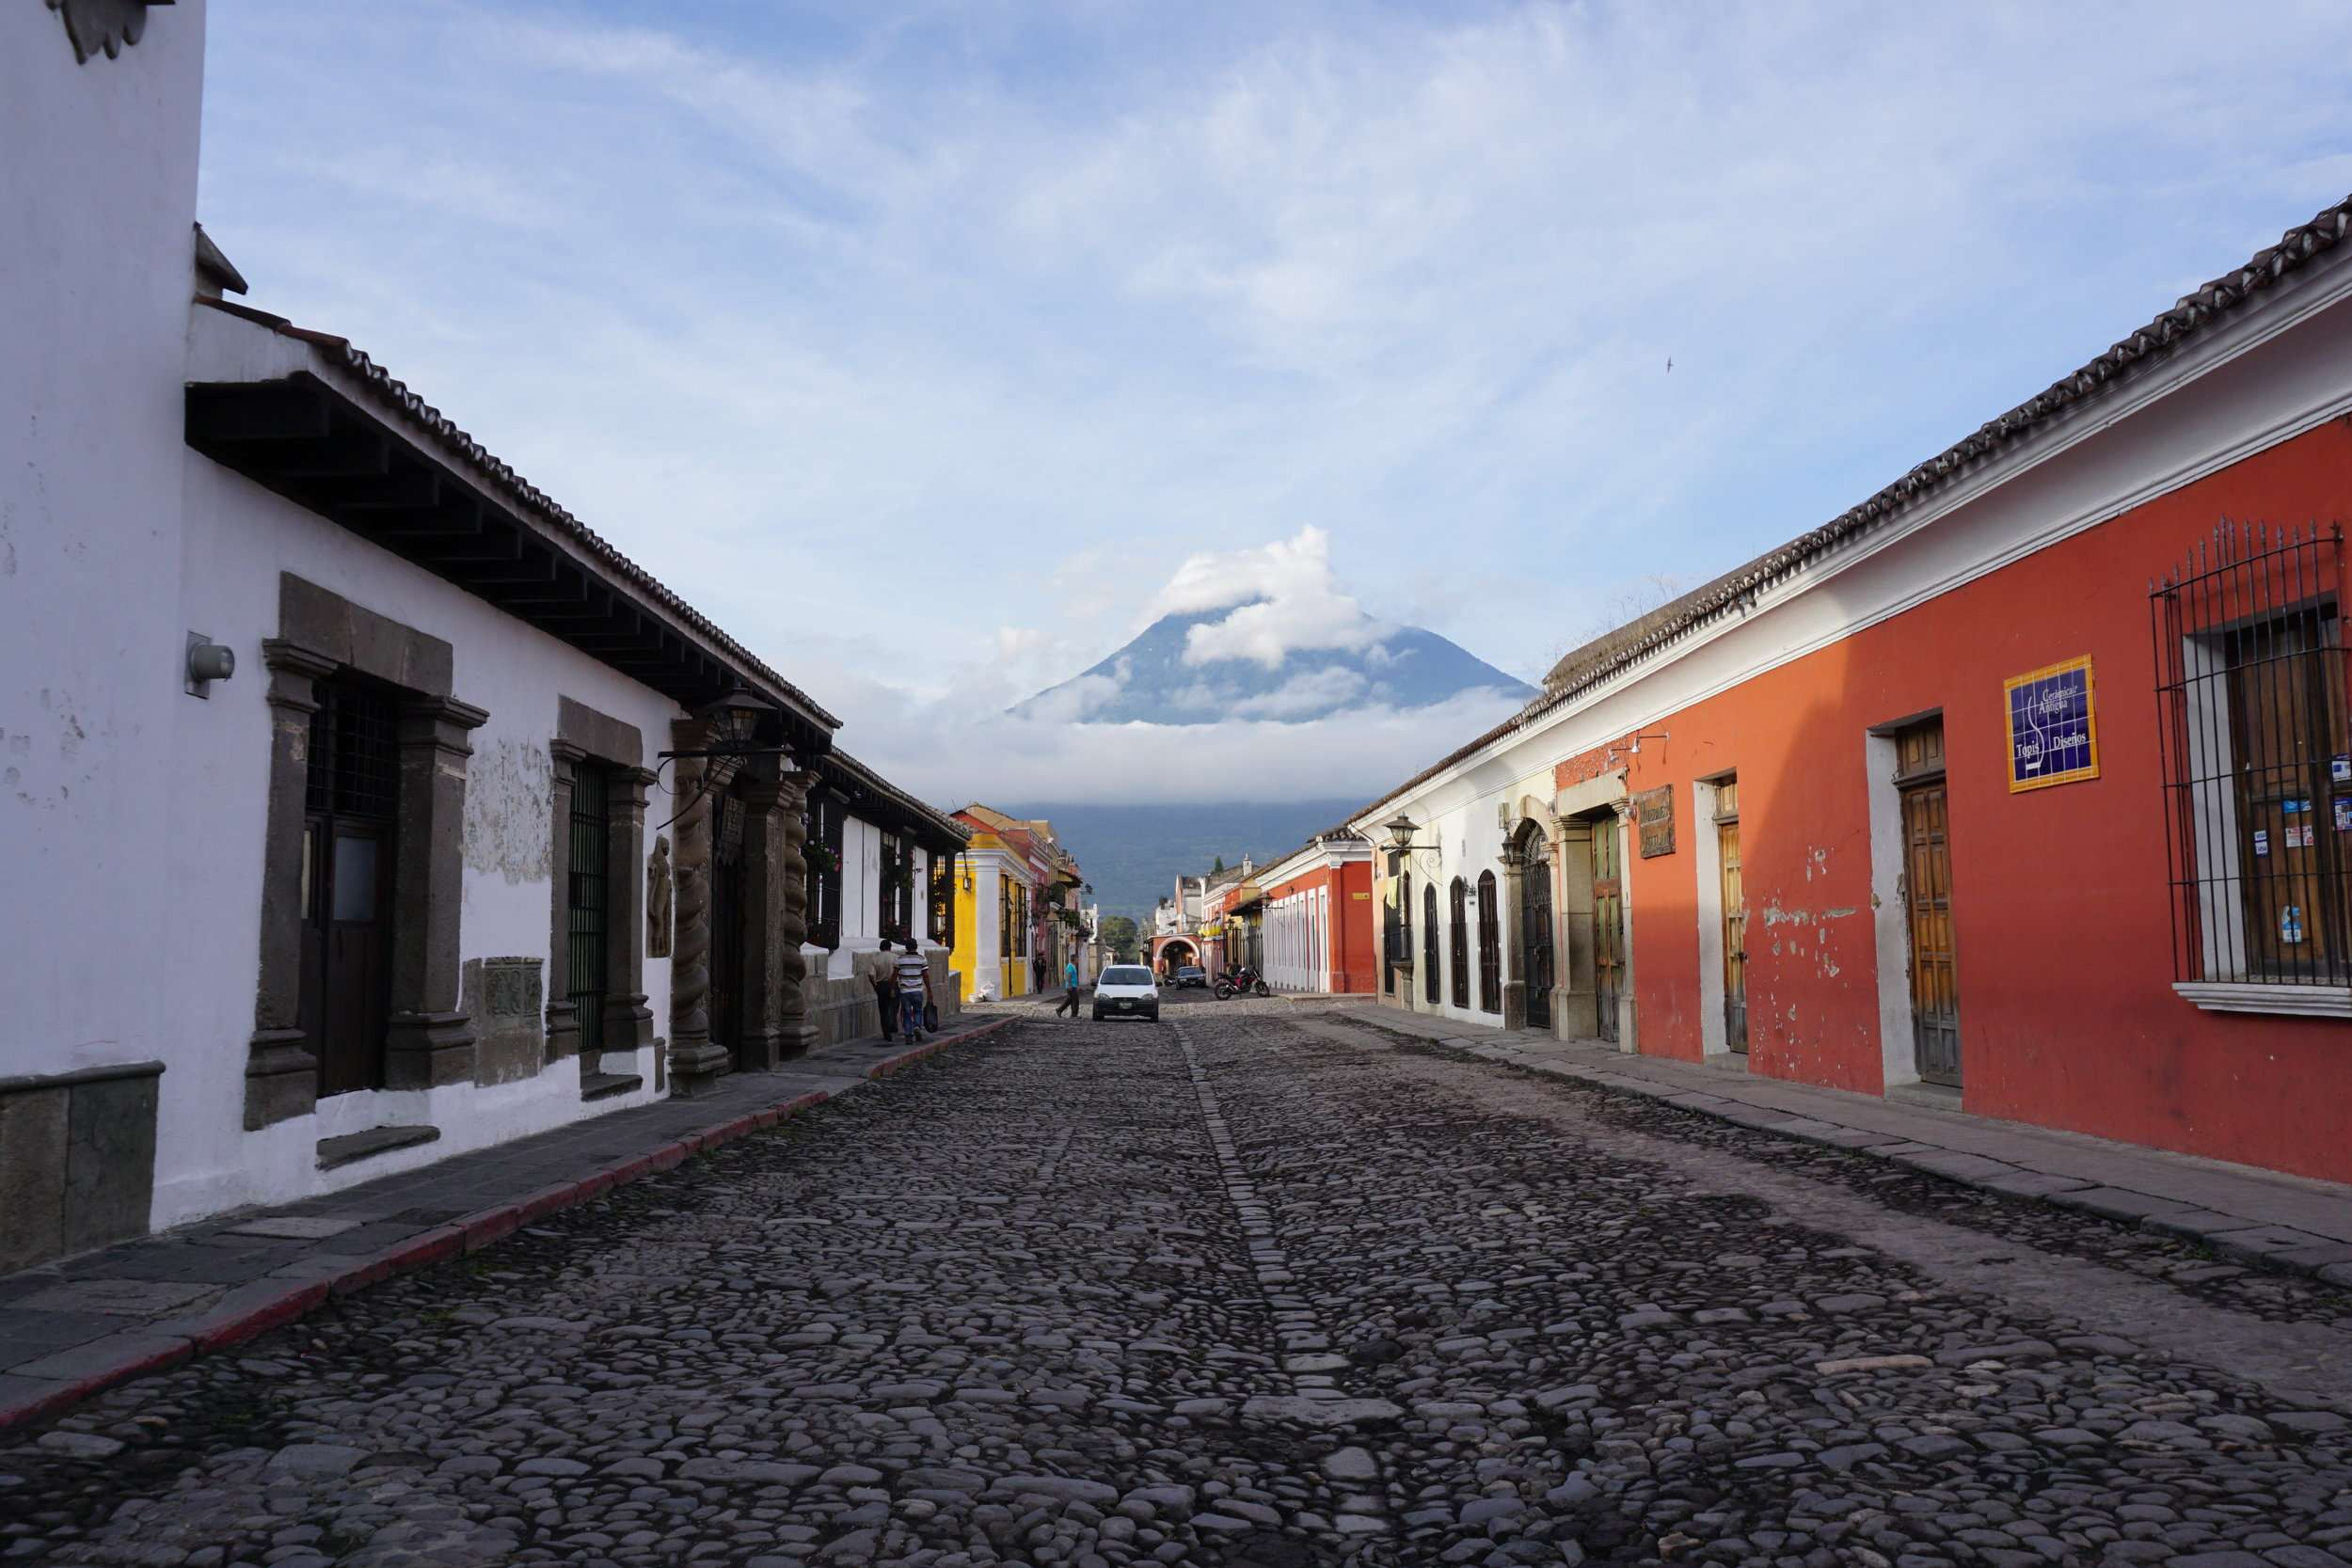 a cobbled street with colourful buildings, with a large volcano at the end, in Antigua, Guatemala